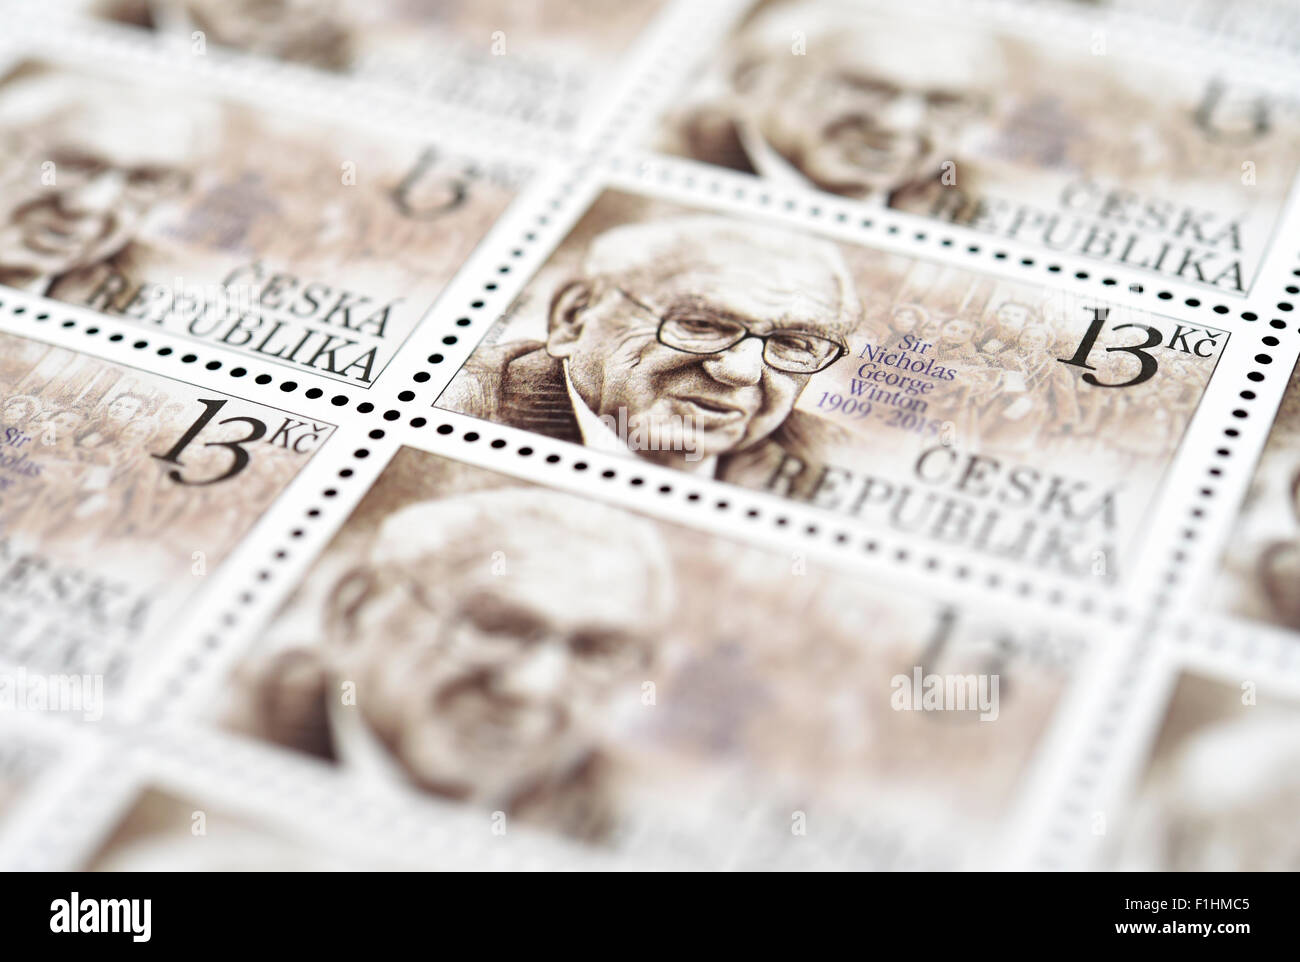 Nicholas Winton Prague High Resolution Stock Photography And Images Alamy